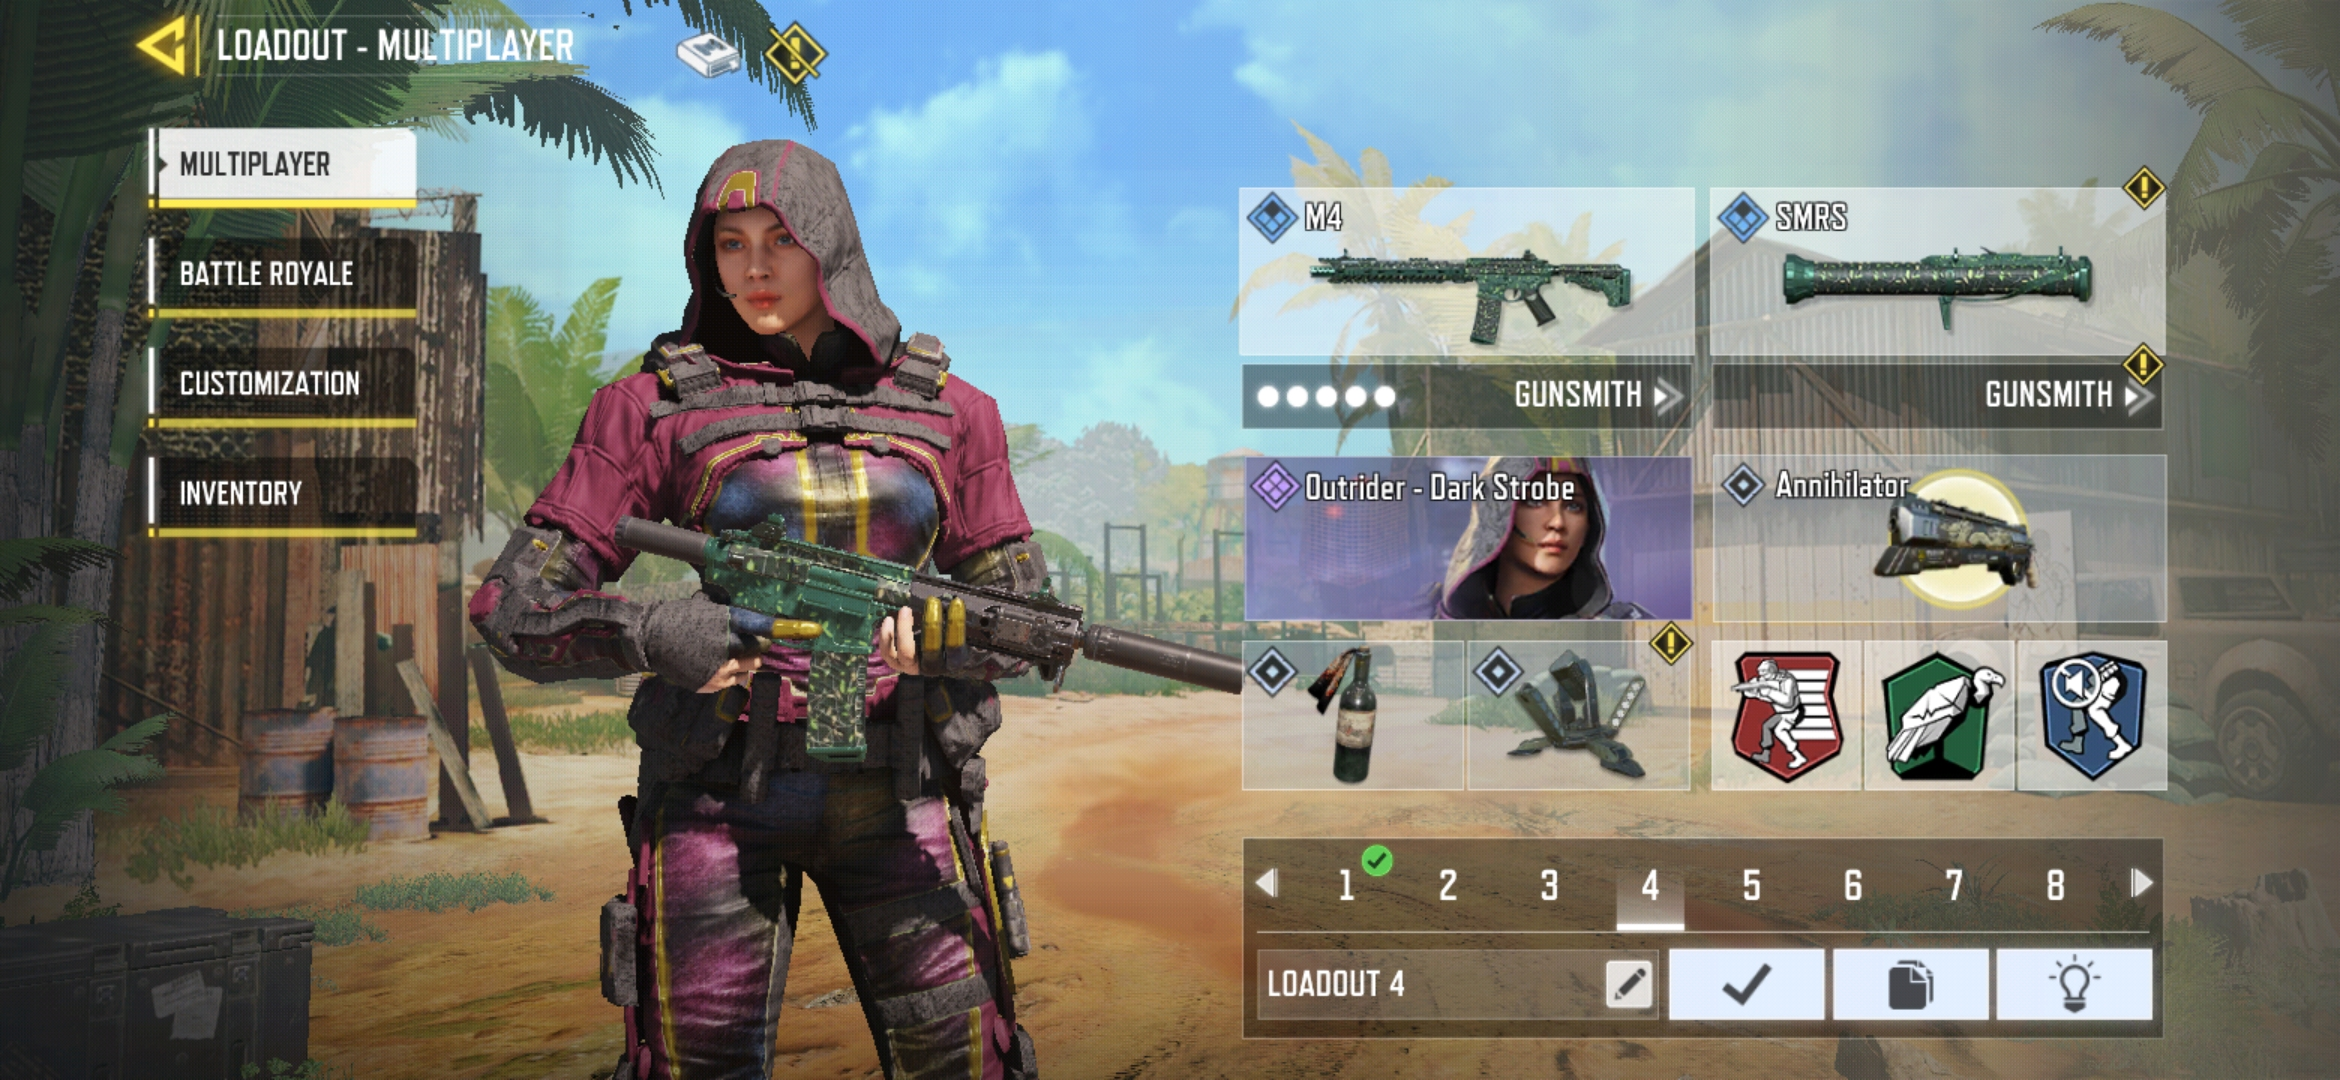 Loadout for M4 Aggressive Gameplay